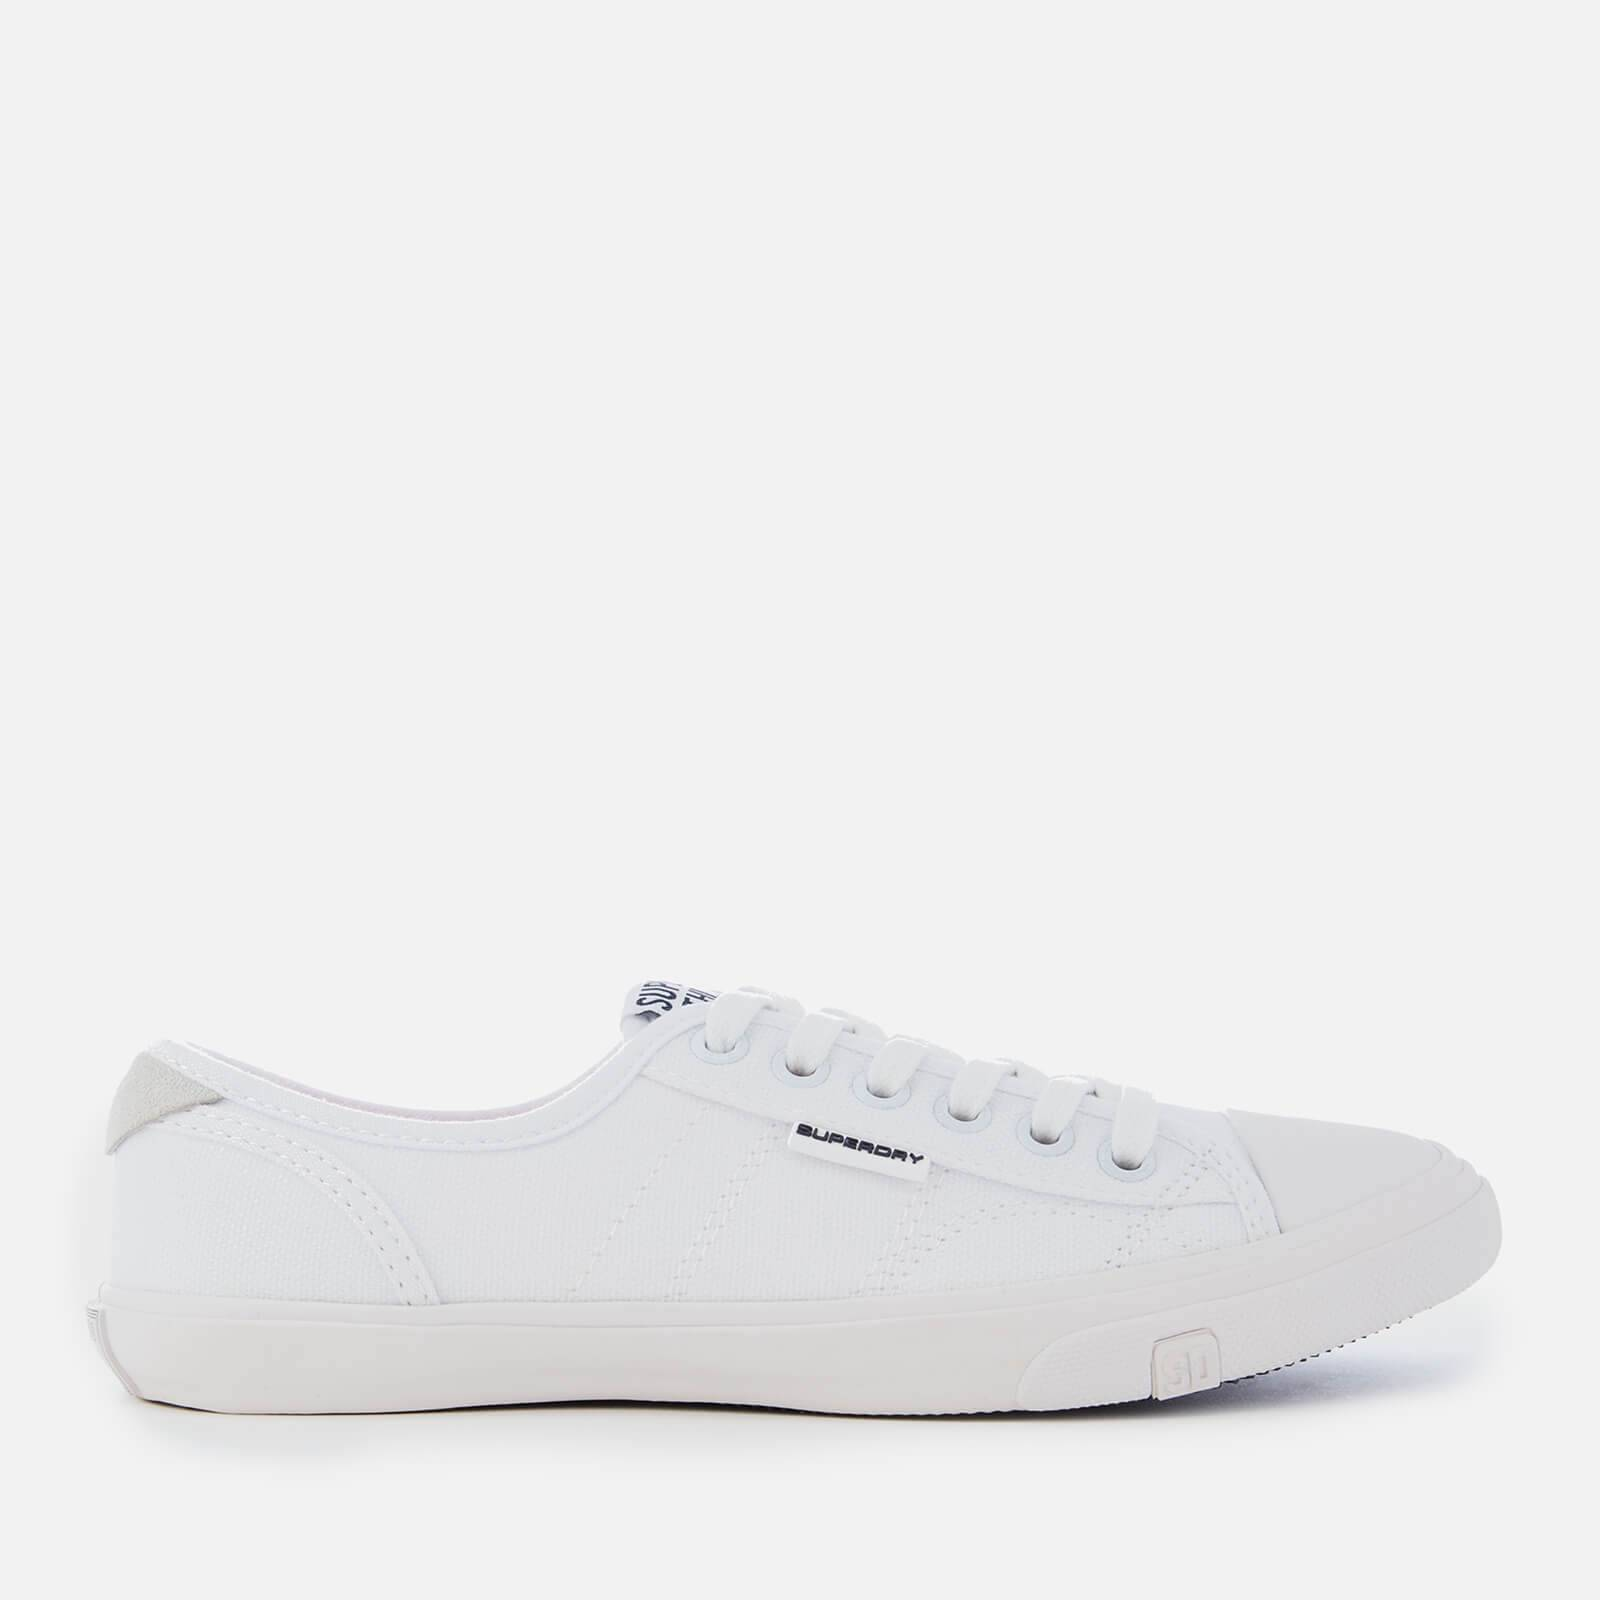 Superdry Women's Low Pro Canvas Trainers - Optic White - UK 3